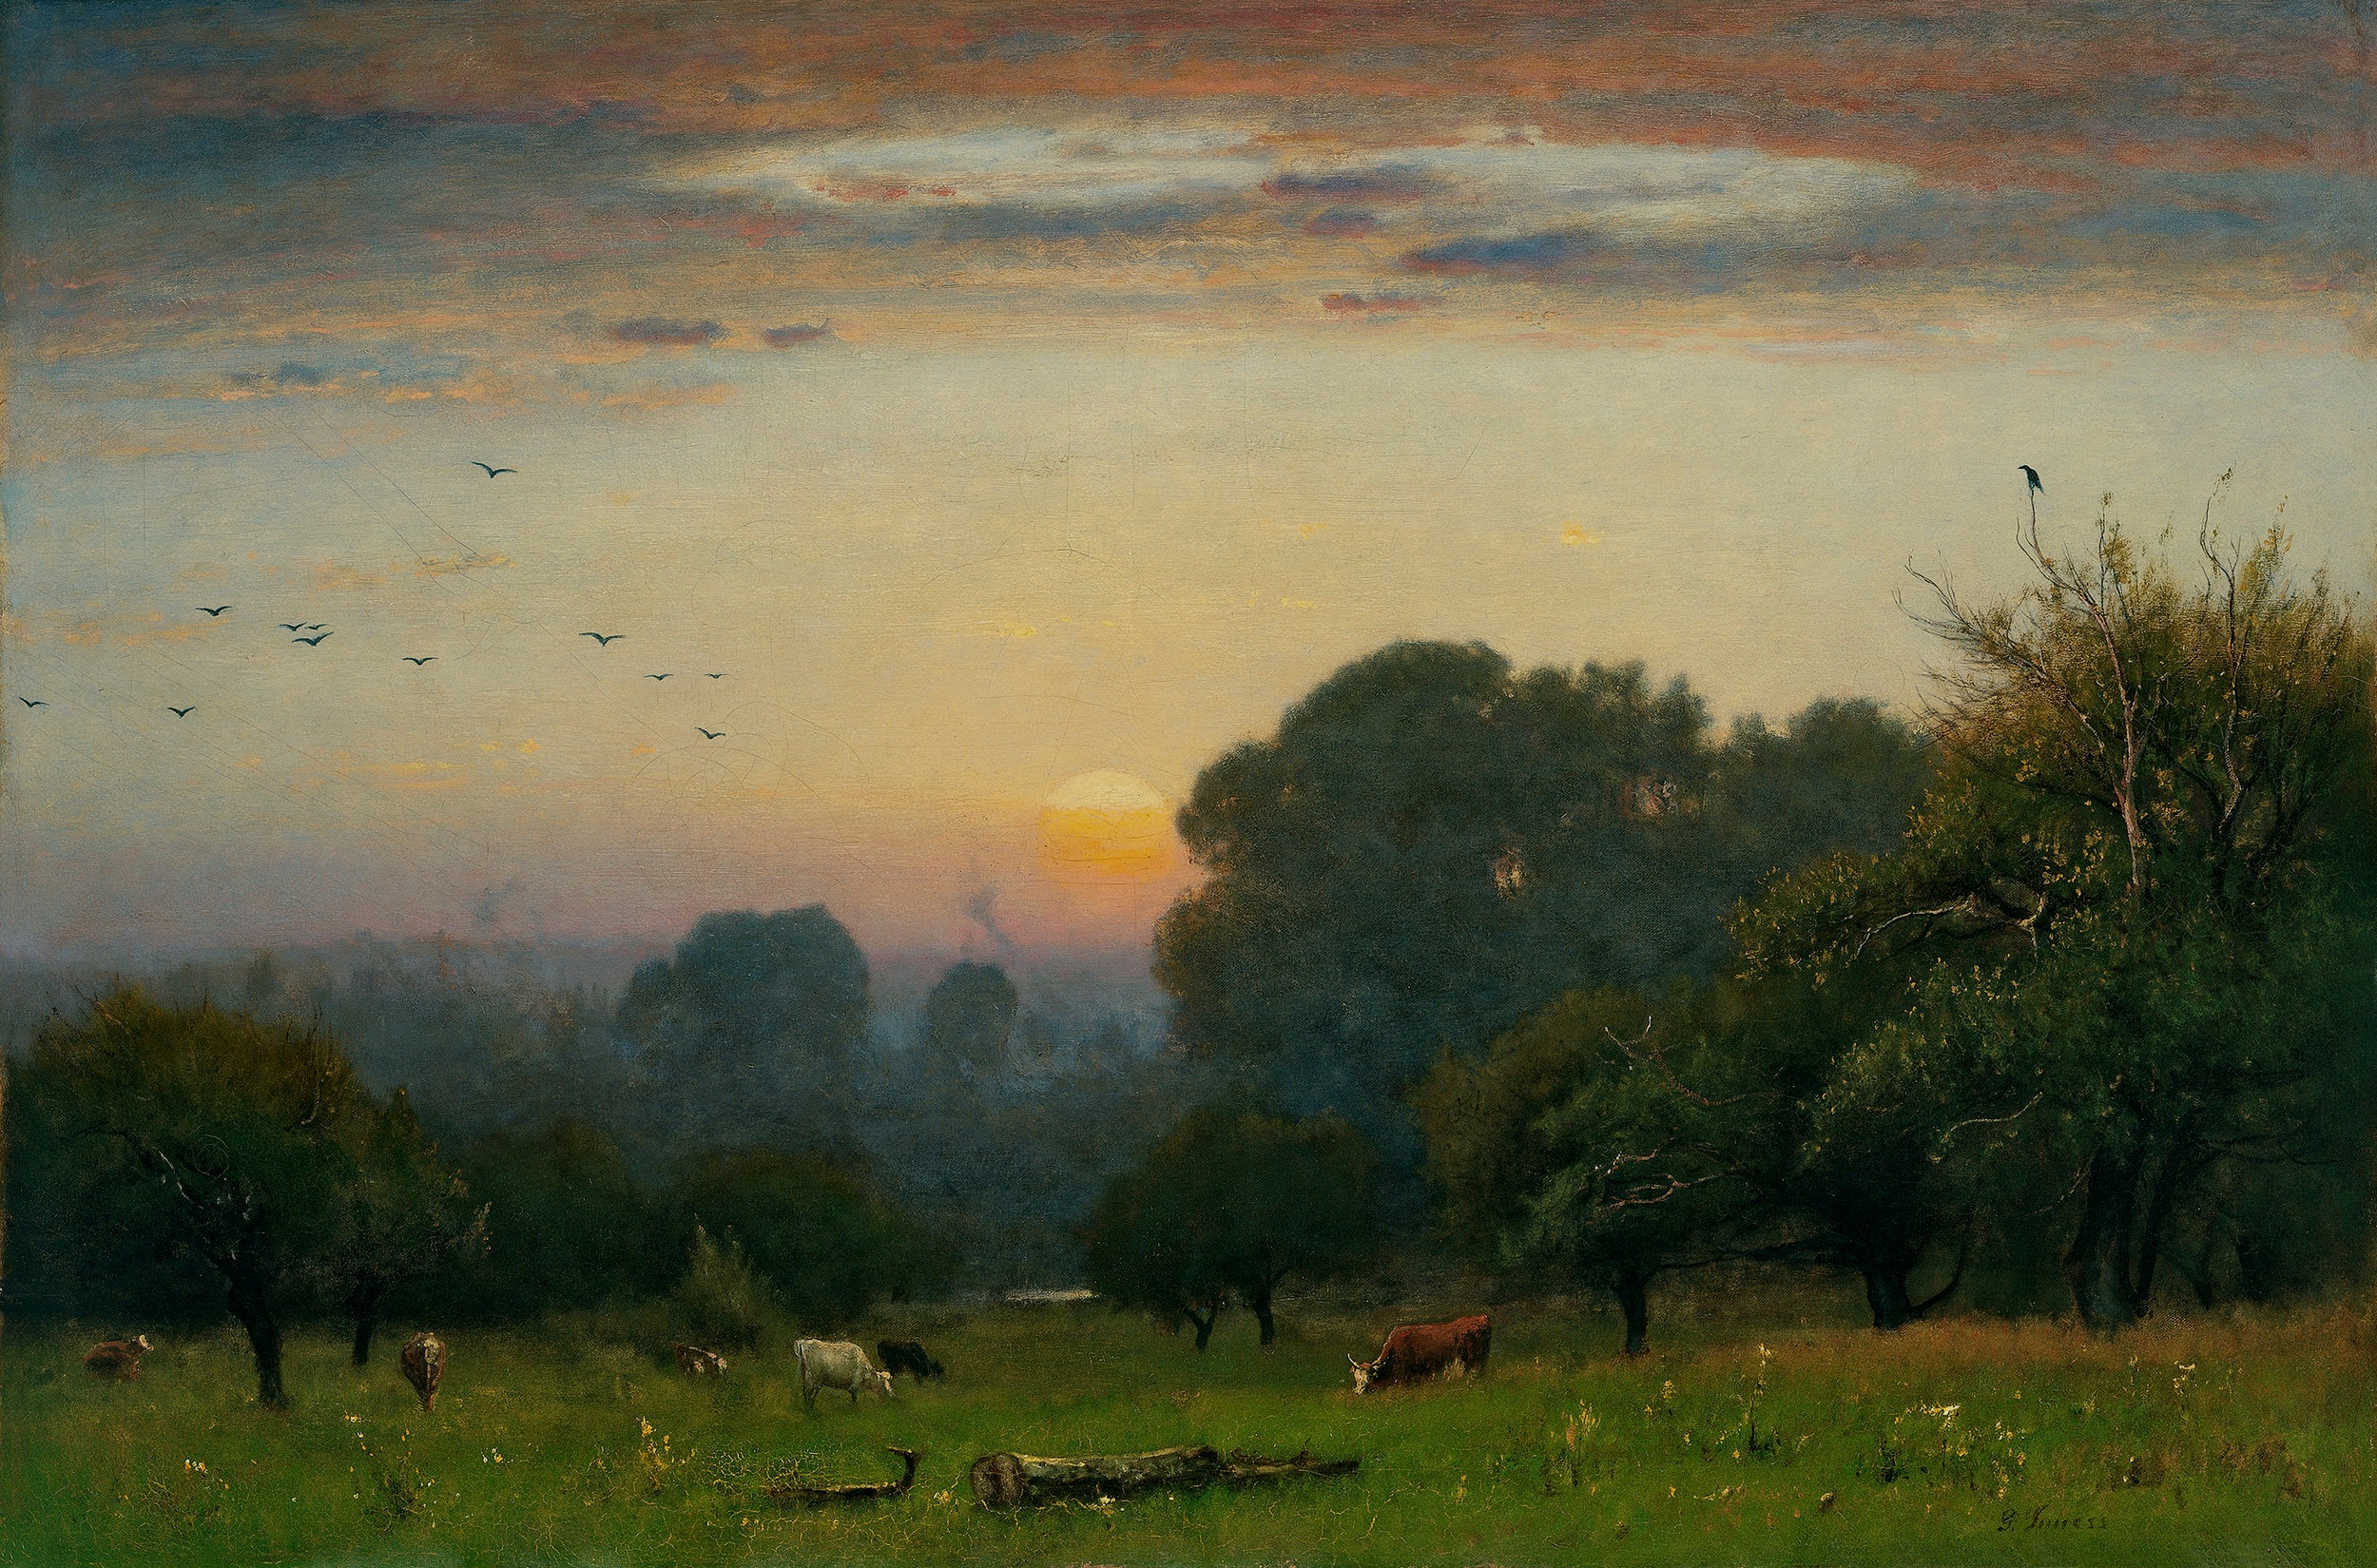 """The true use of art is, first, to cultivate the artist's own spiritual nature."" - -George Inness"